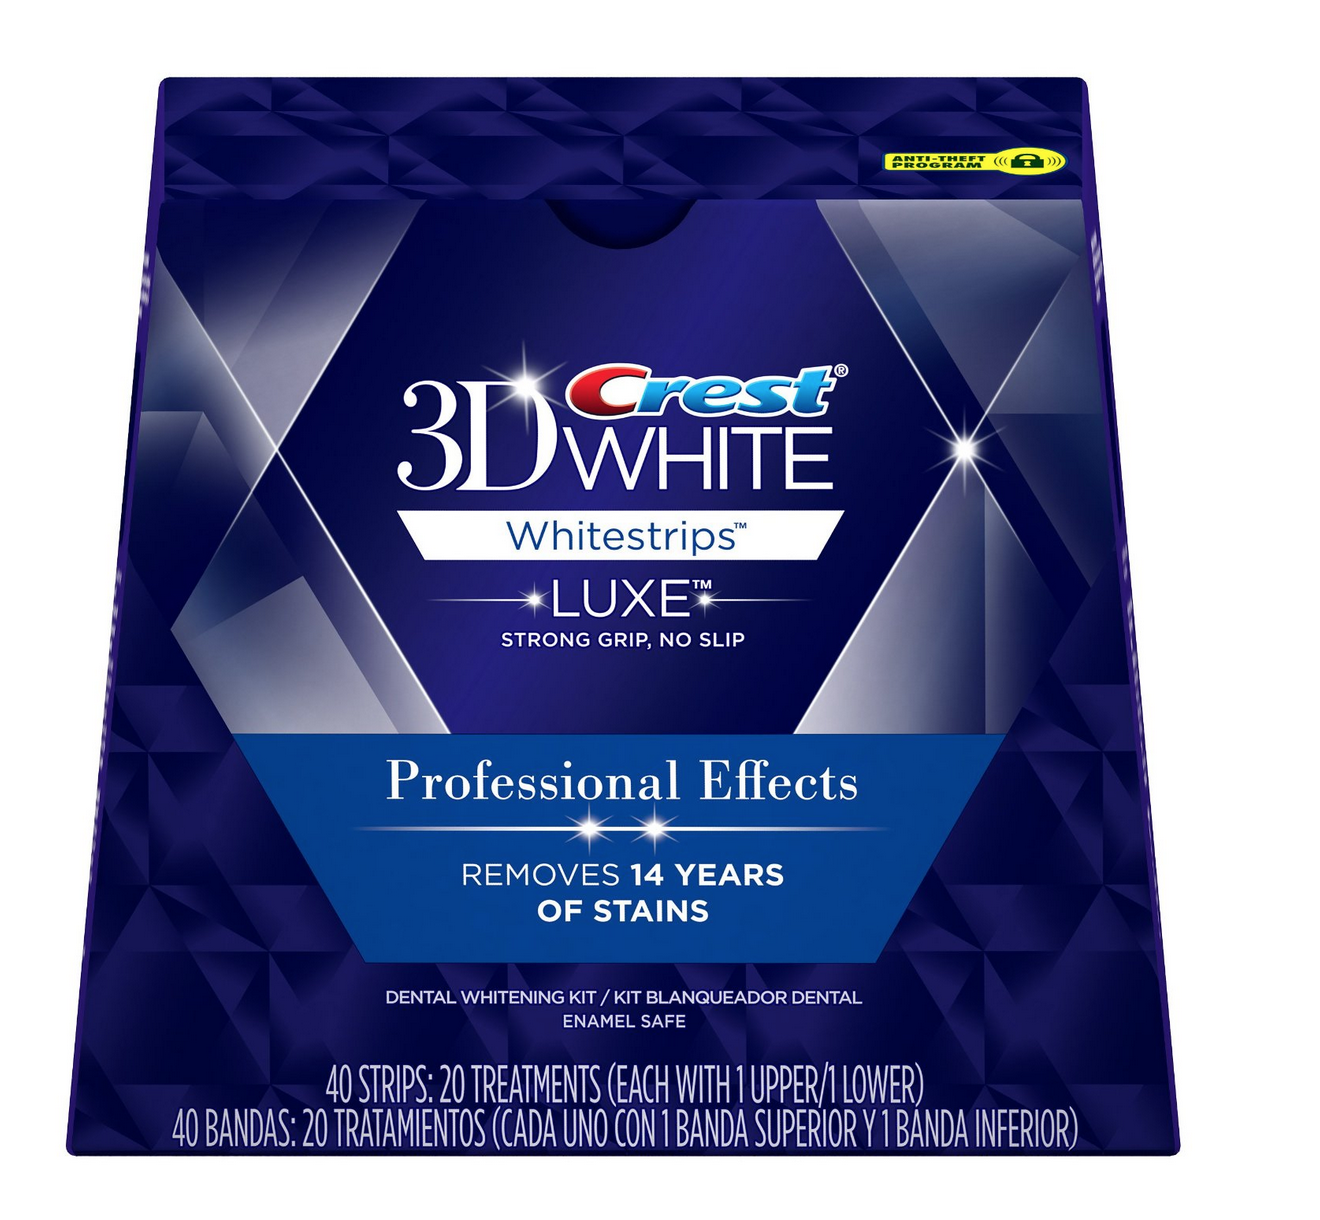 Crest 3D White Luxe Whitestrips Professional Effects Only $33.60 (Reg. $47.49!)